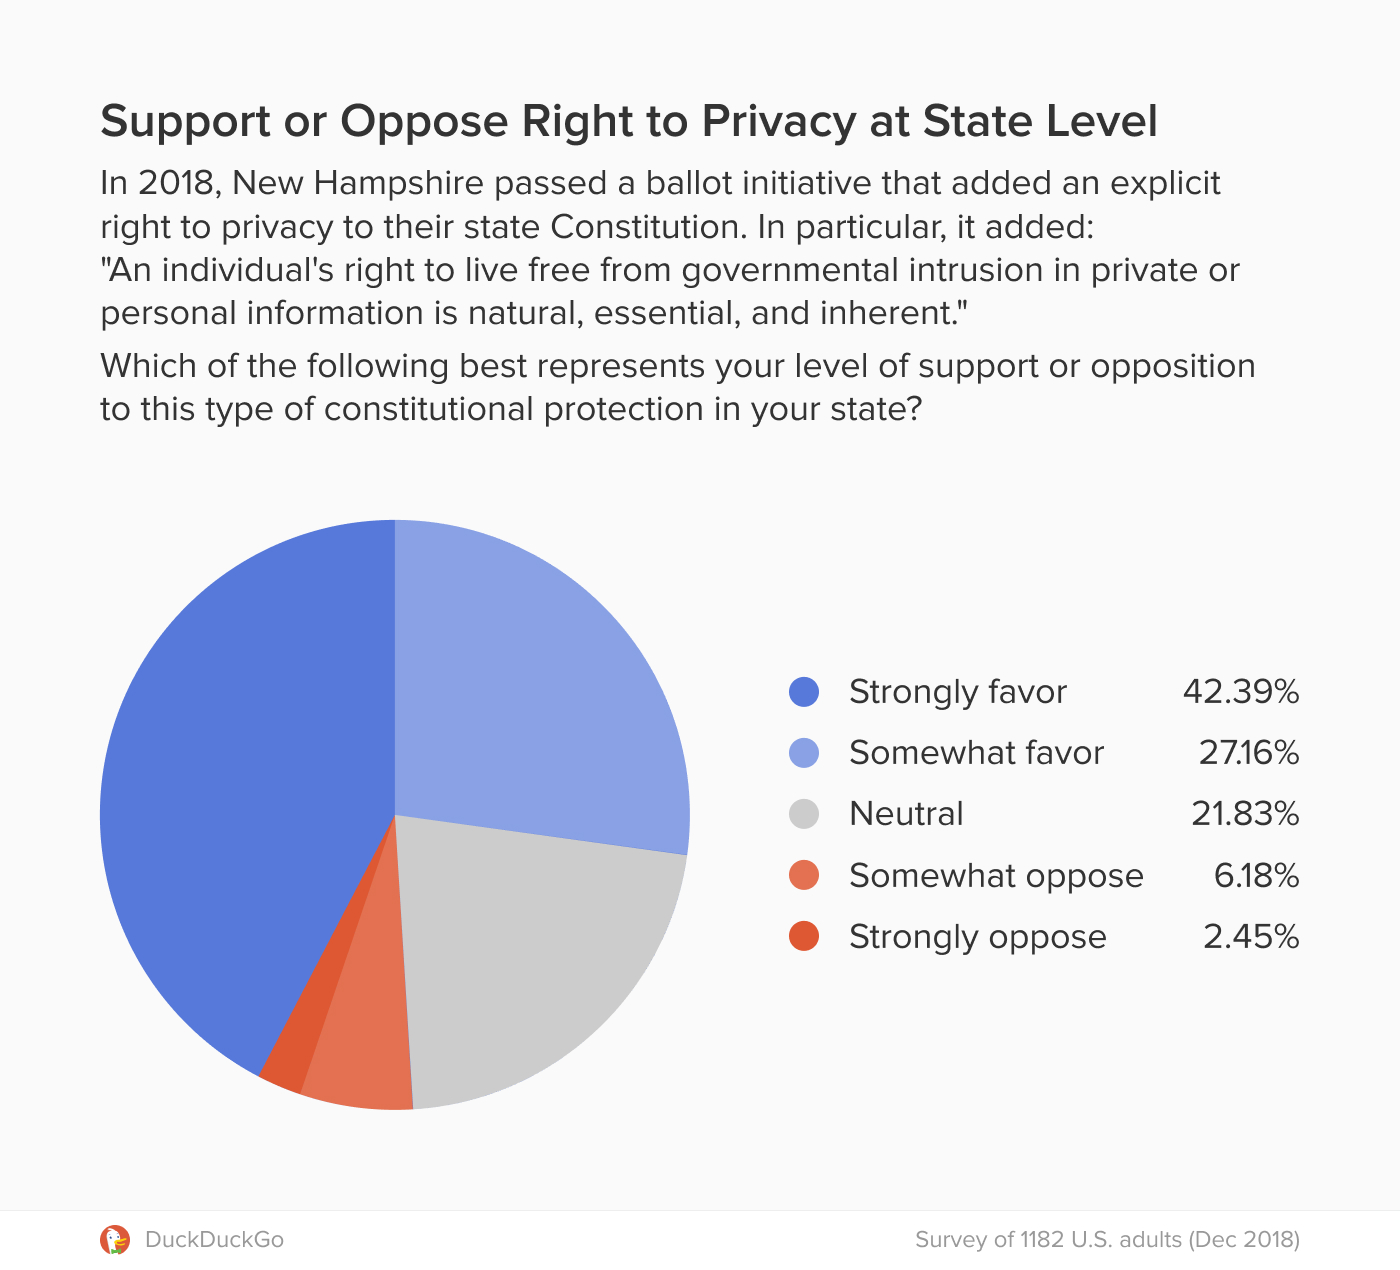 Graph showing support for Constitutional privacy protection at the state level in the U.S.